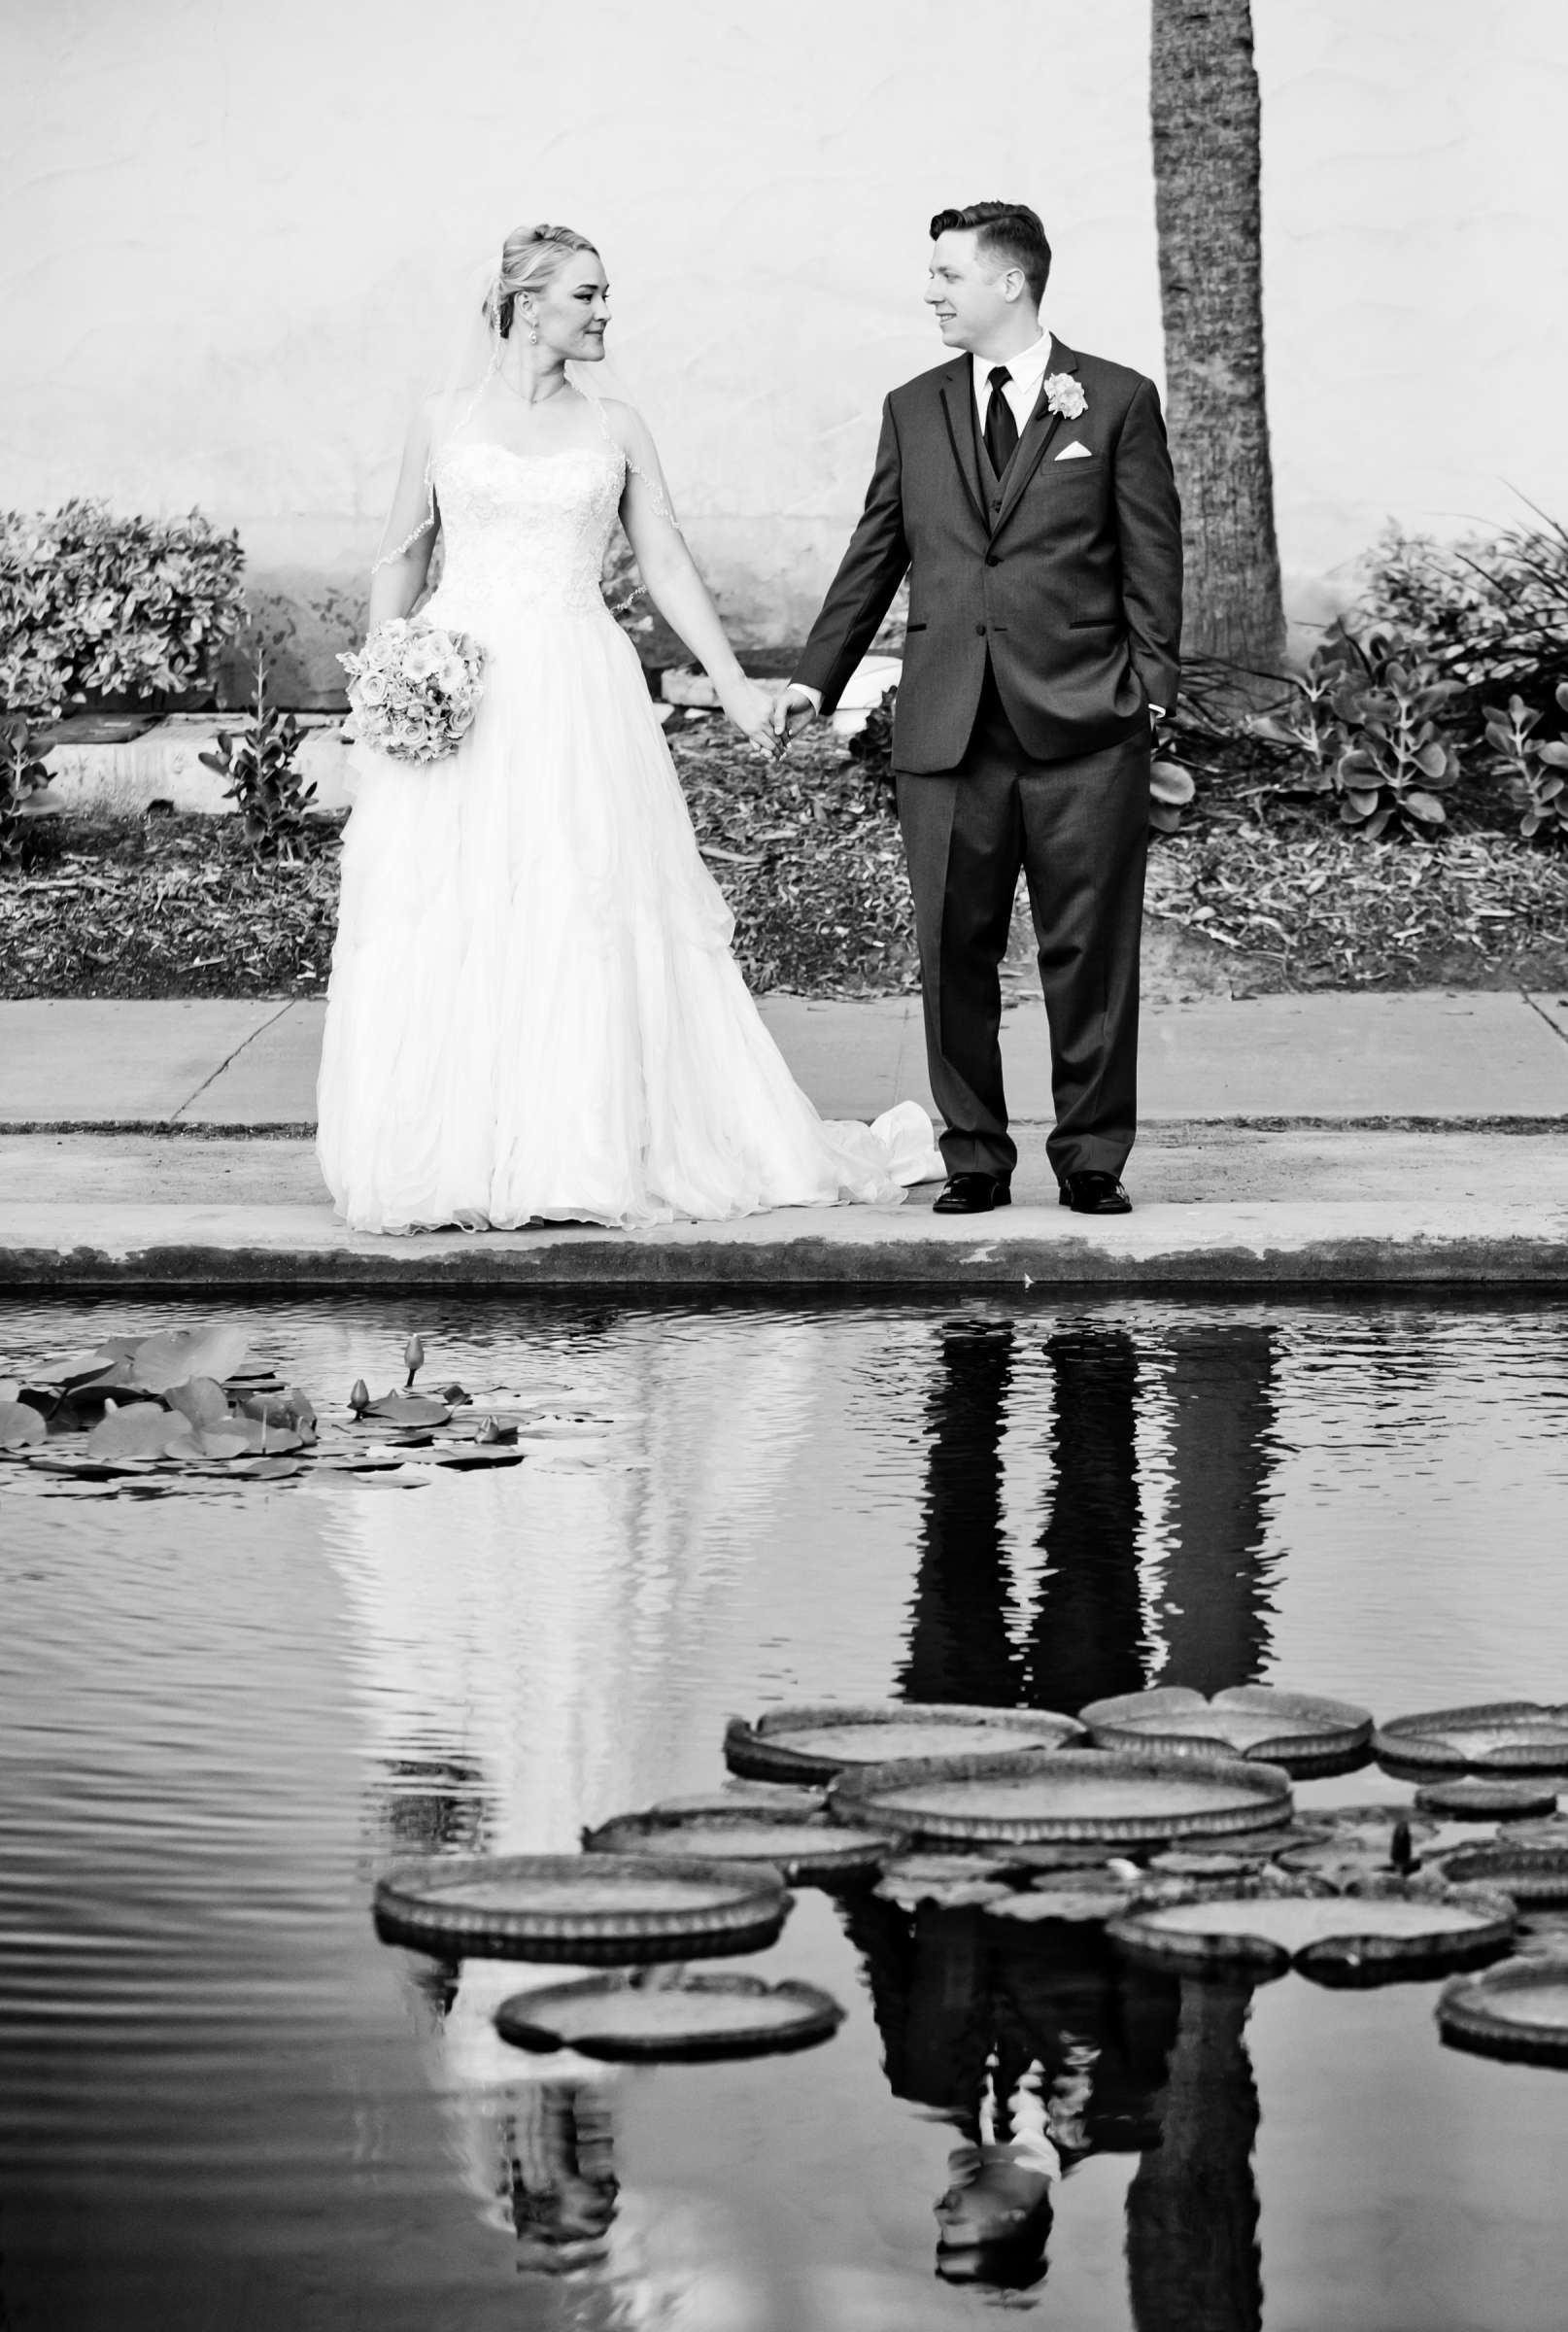 The Prado Wedding coordinated by Sublime Weddings, Ashley and Andrew Wedding Photo #3 by True Photography